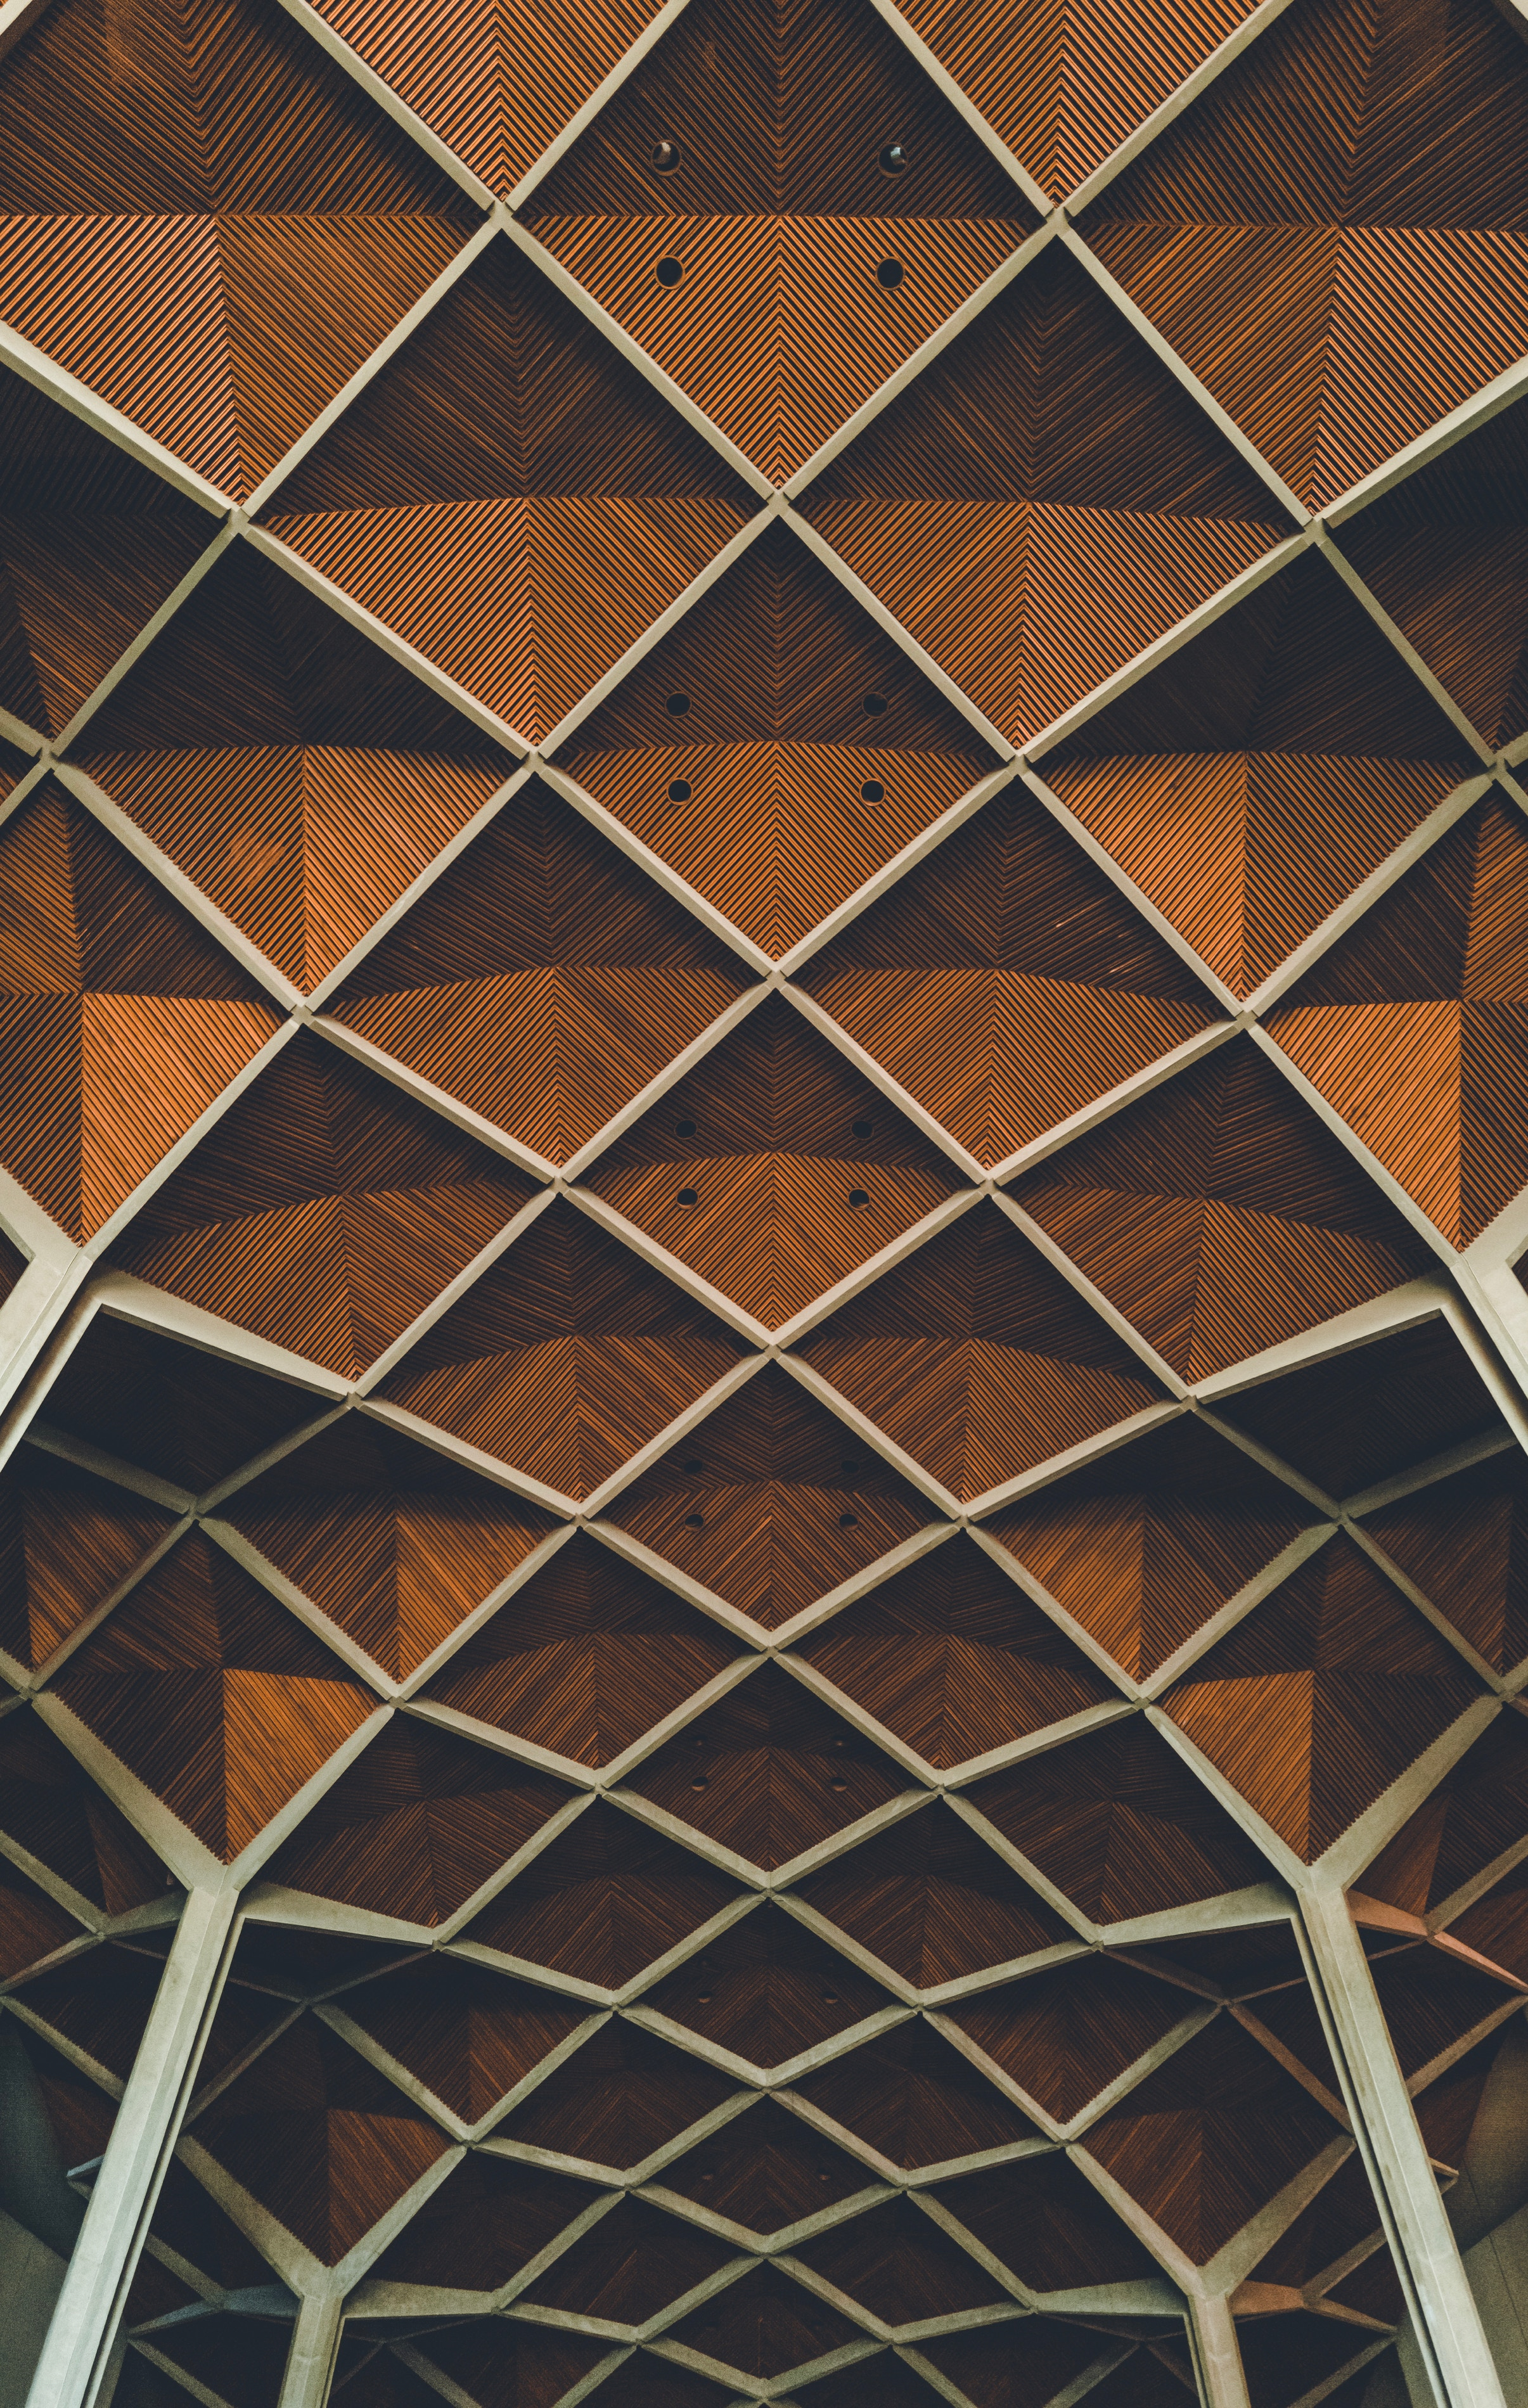 91744 download wallpaper Minimalism, Architecture, Interior, Lines, Grid, Design, Symmetry screensavers and pictures for free